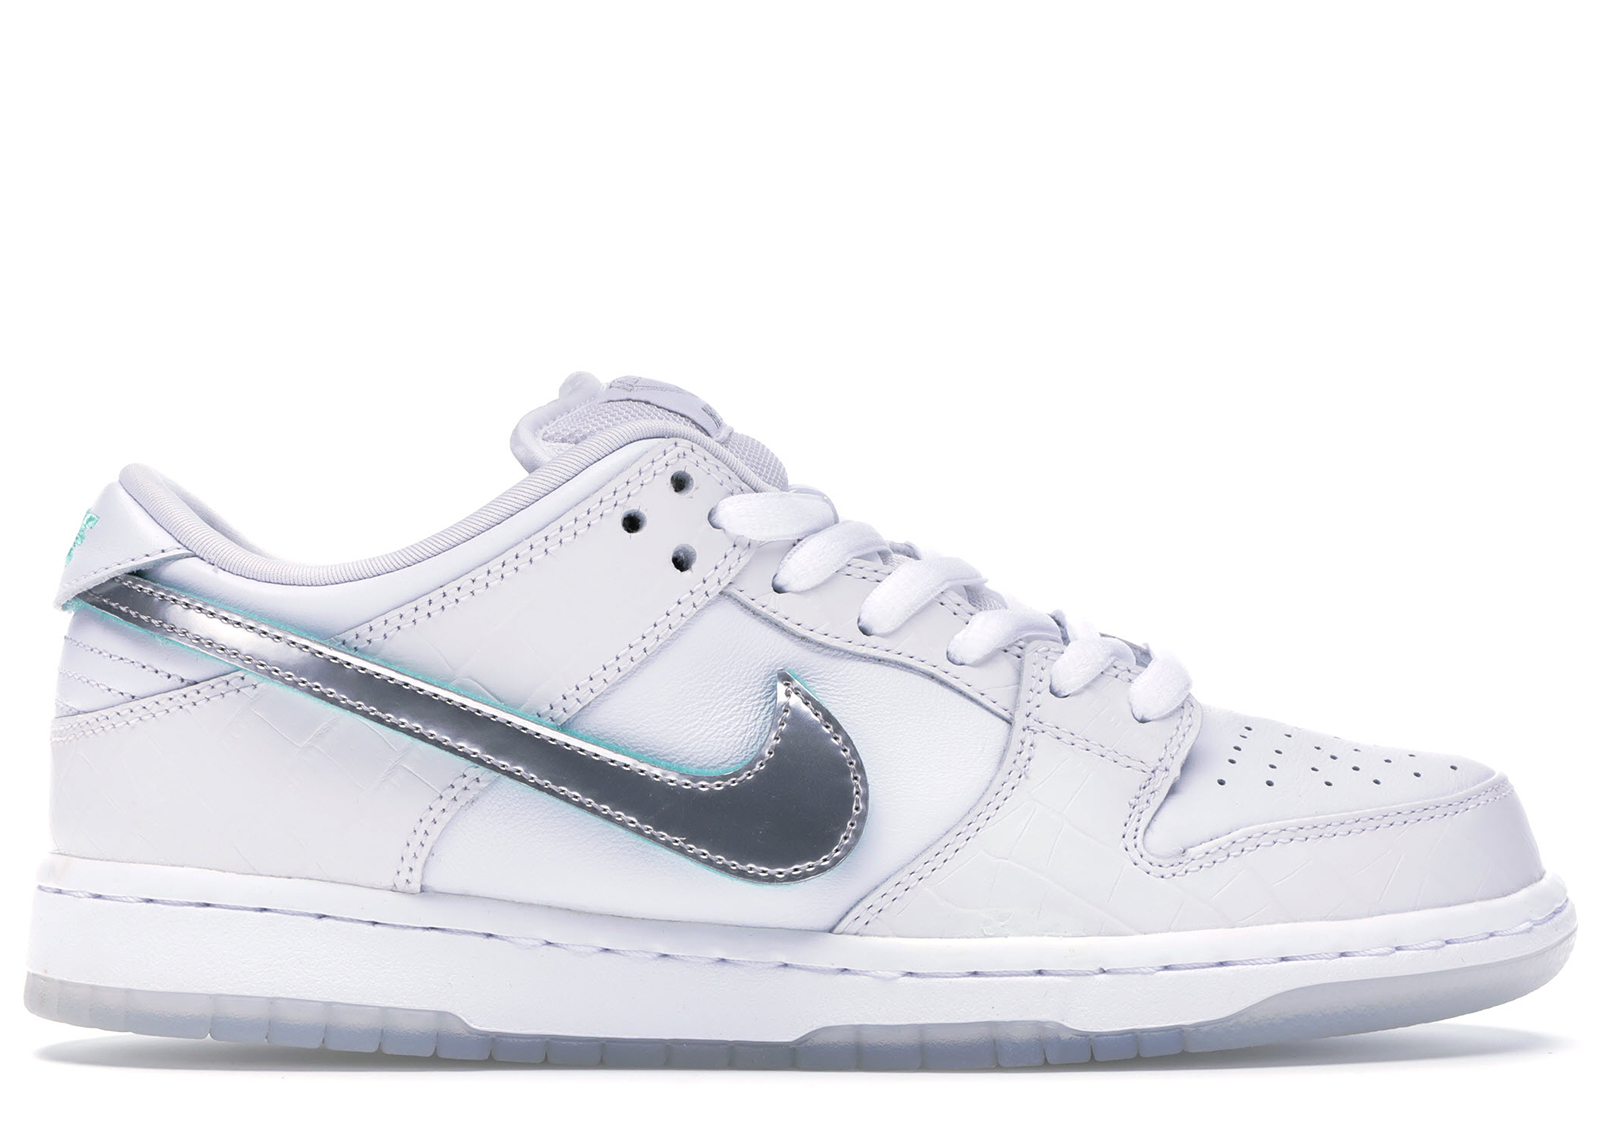 Nike SB Dunk Low Diamond Supply Co White Diamond - BV1310-100